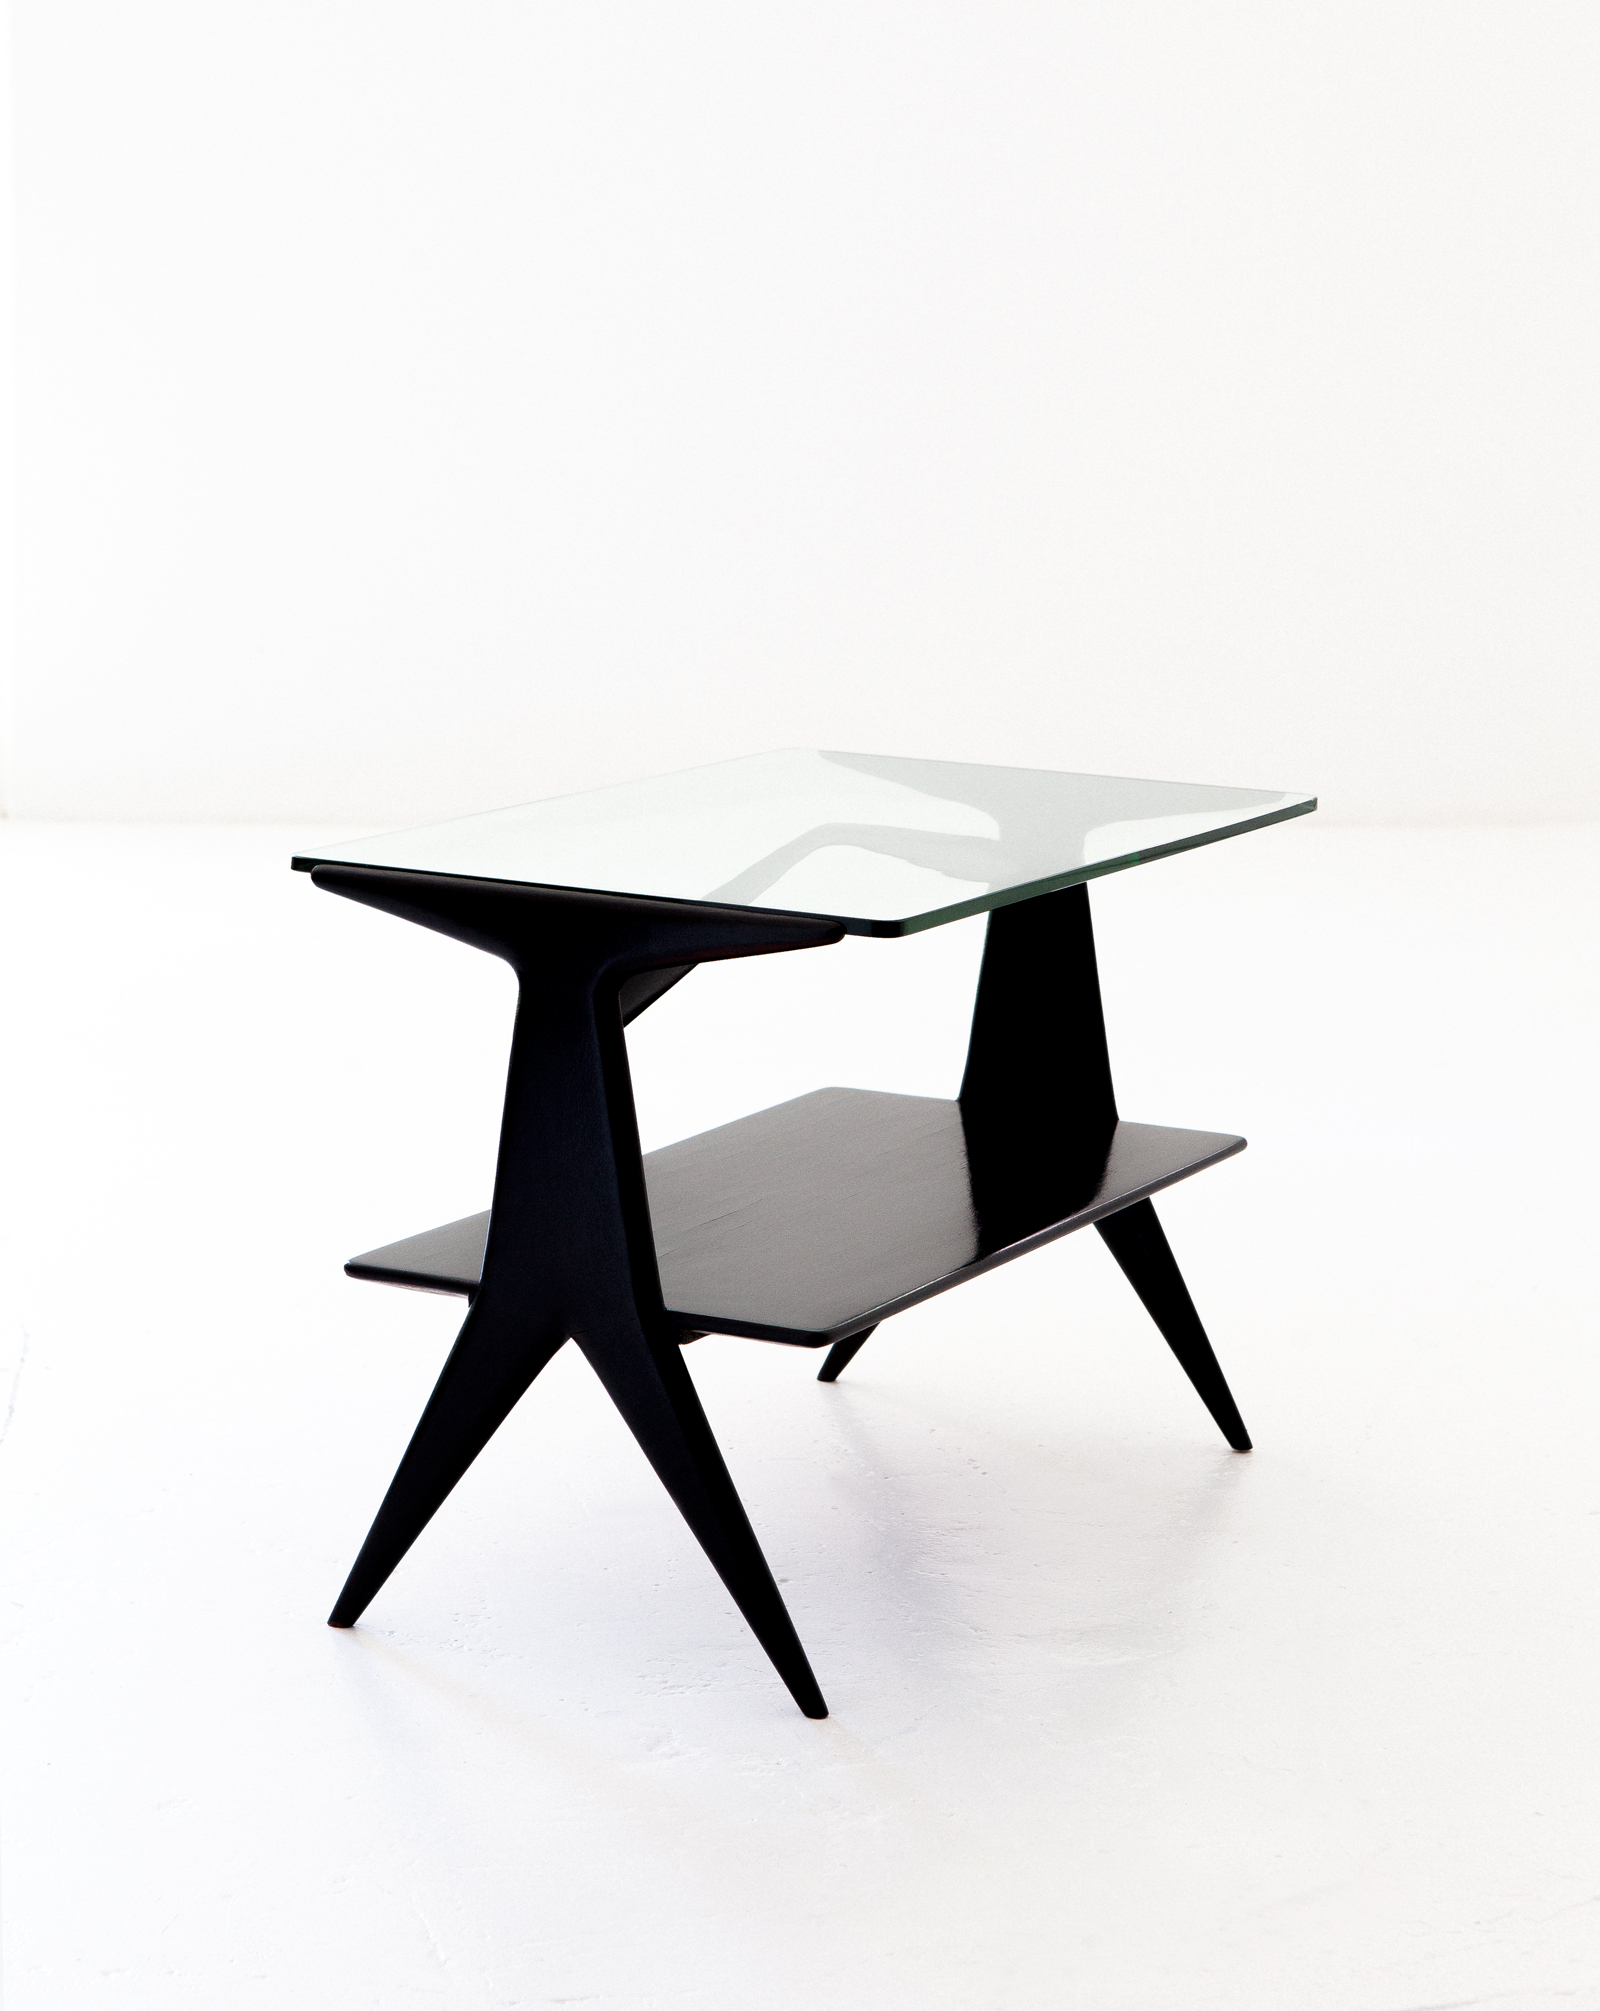 table-73.7